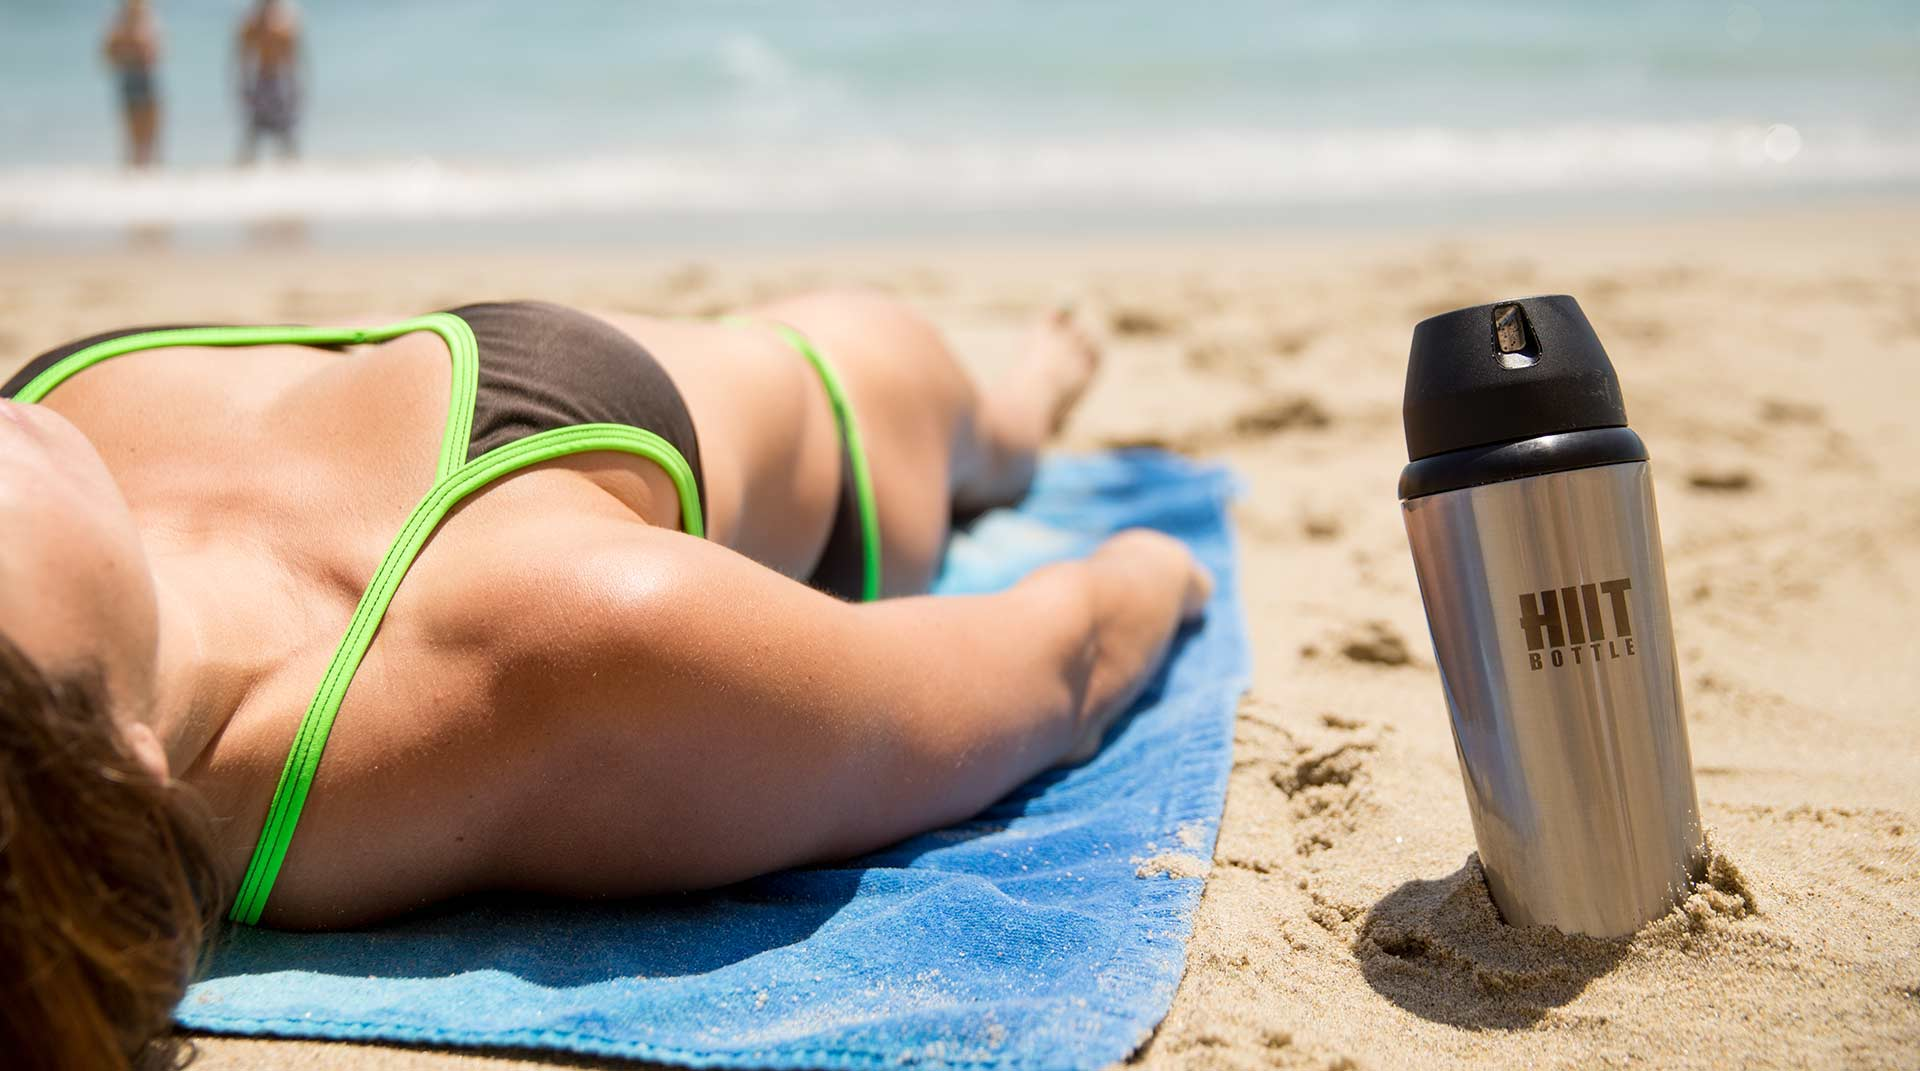 HIIT Bottle on the Beach